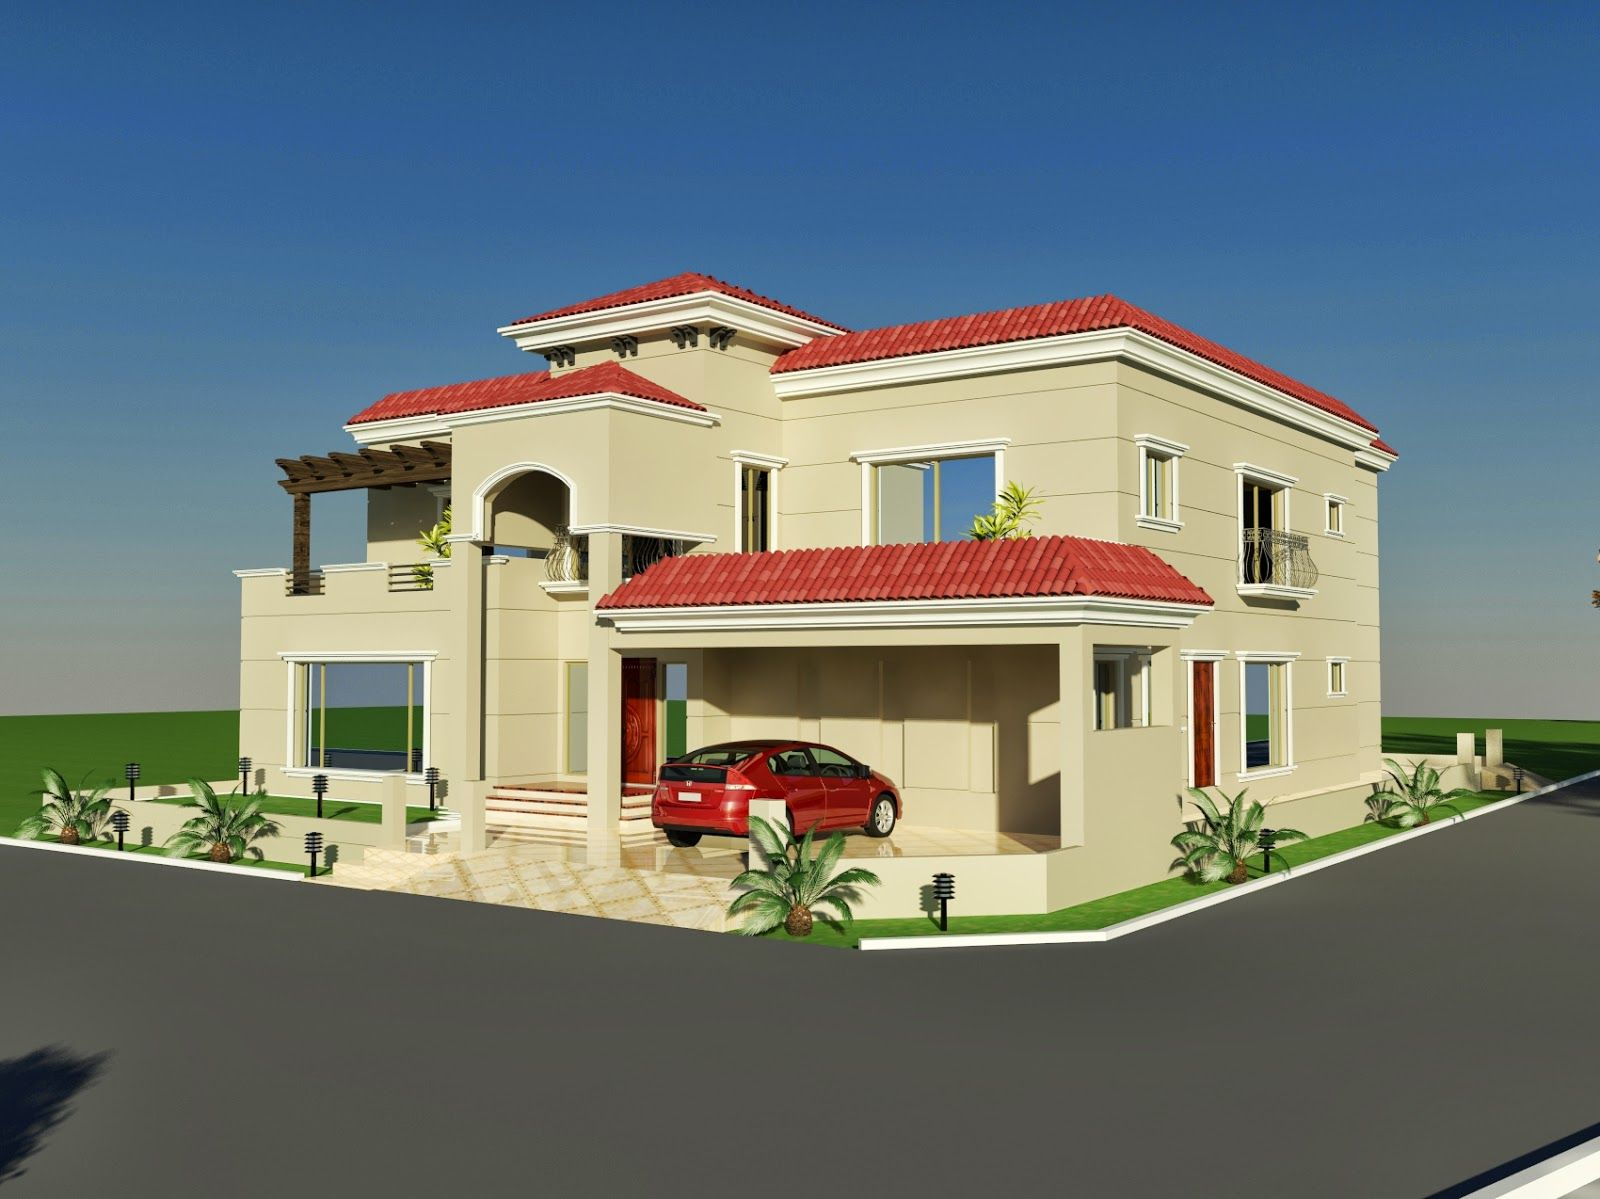 Home Design In Pakistan pakistan modern home designs modern desert homes 60 X 100 Wapda Town 1 Kanal House Design 3d Front Elevation In Lahore